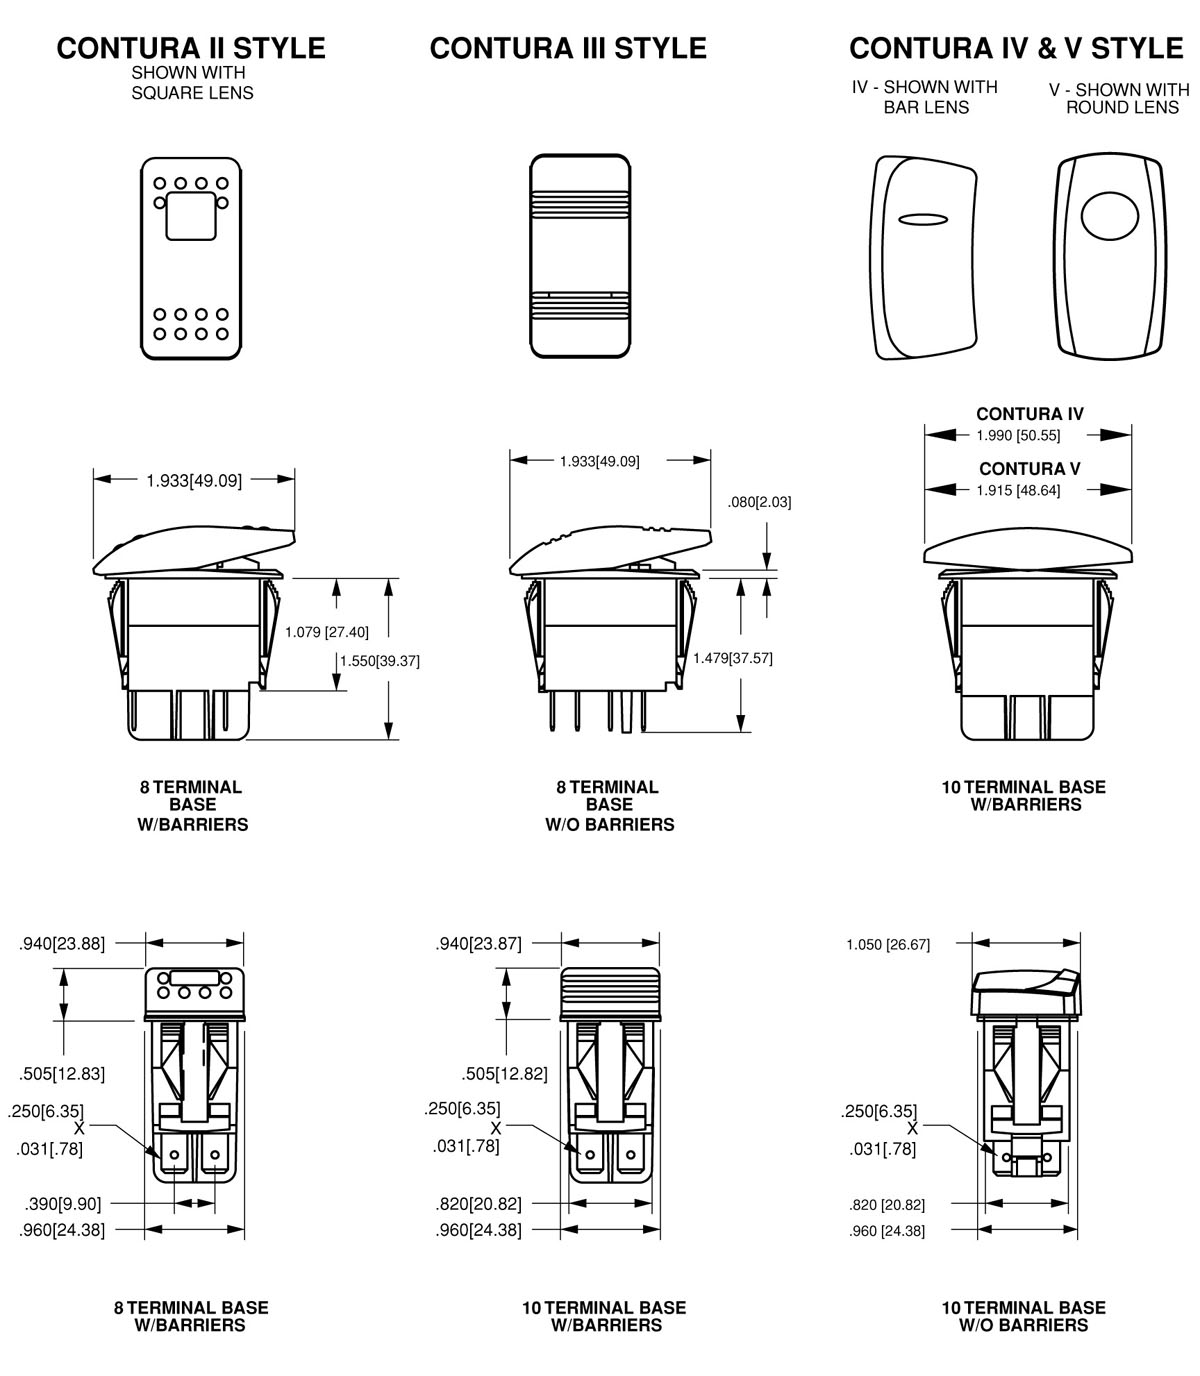 12V Light Switch Wiring Diagram from www.searay-parts.com